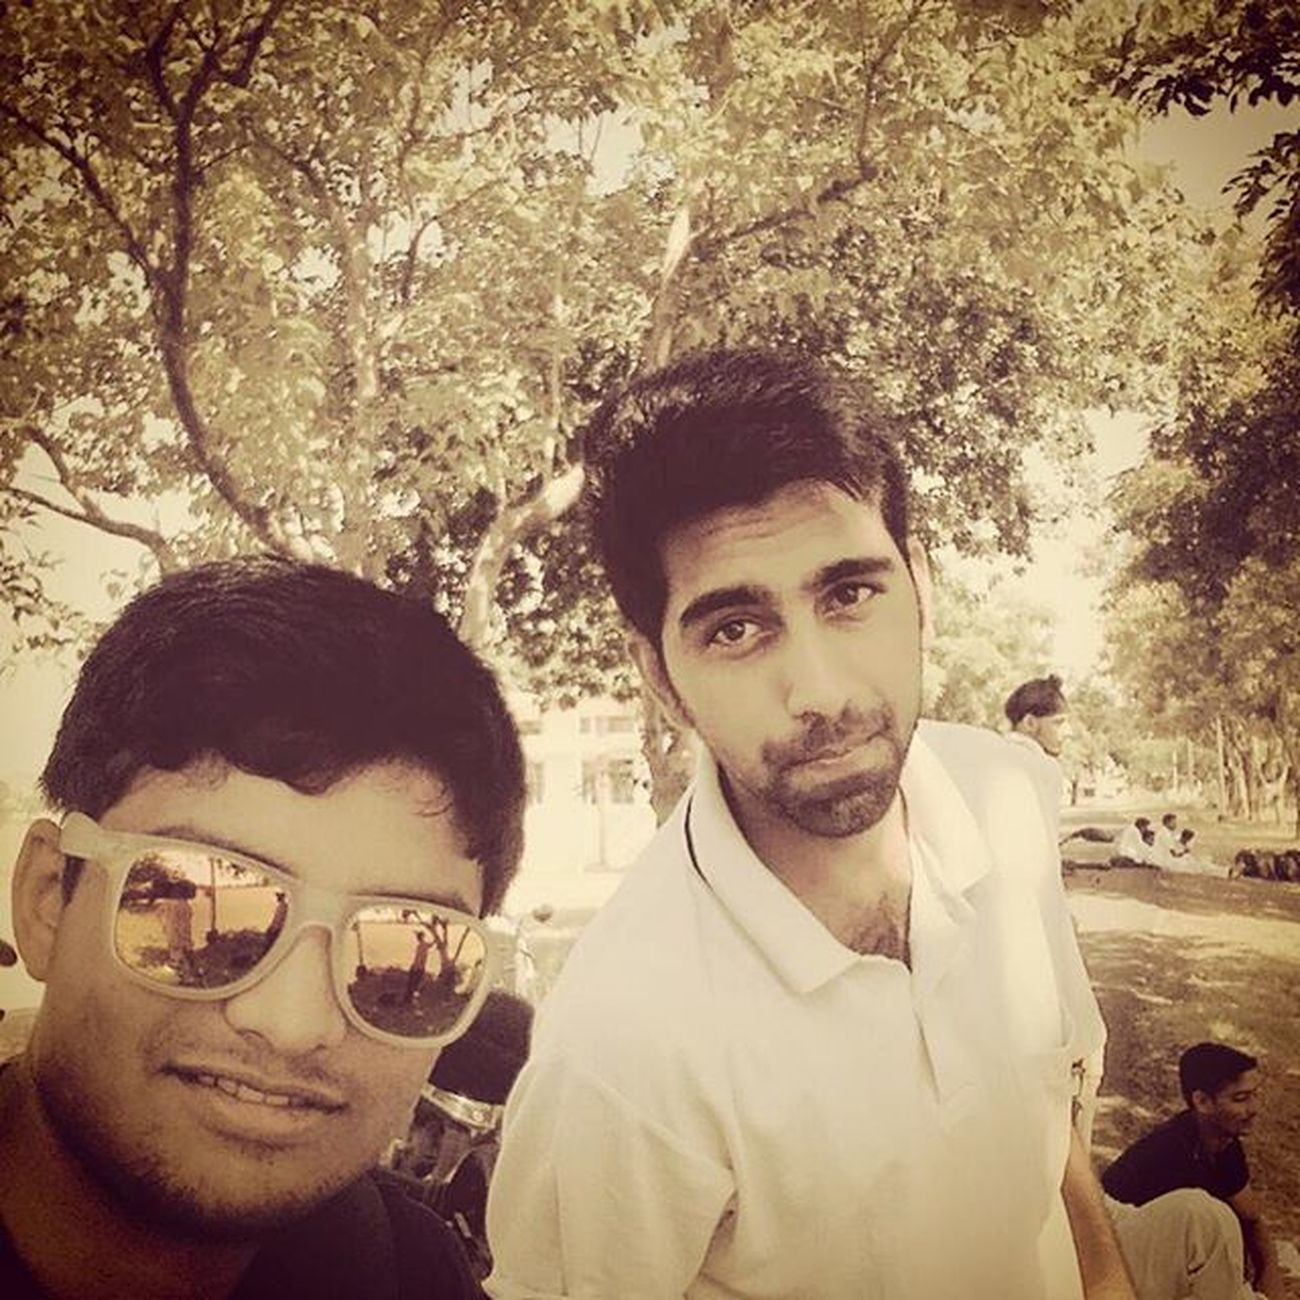 With_Preethvi_bhai Seniors Intercollege_cricket_tournament Play_hard_play_fair Insta_Shades